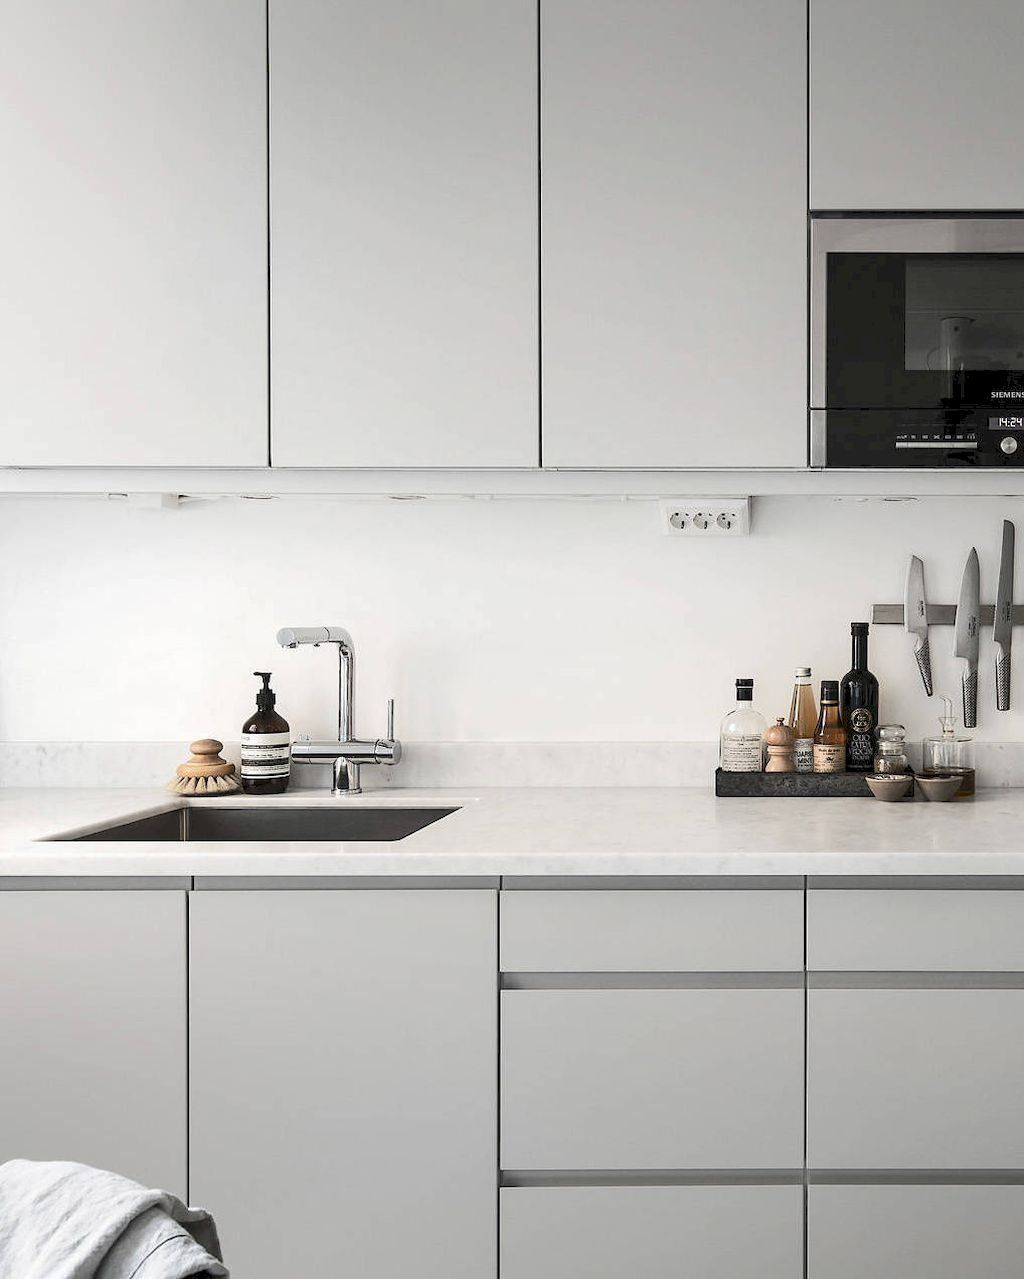 Implausible Scandinavian Kitchen Design Interior Of The All White And Beautiful Tiny Kitchen White Modern Kitchen White Kitchen Design Kitchen Interior